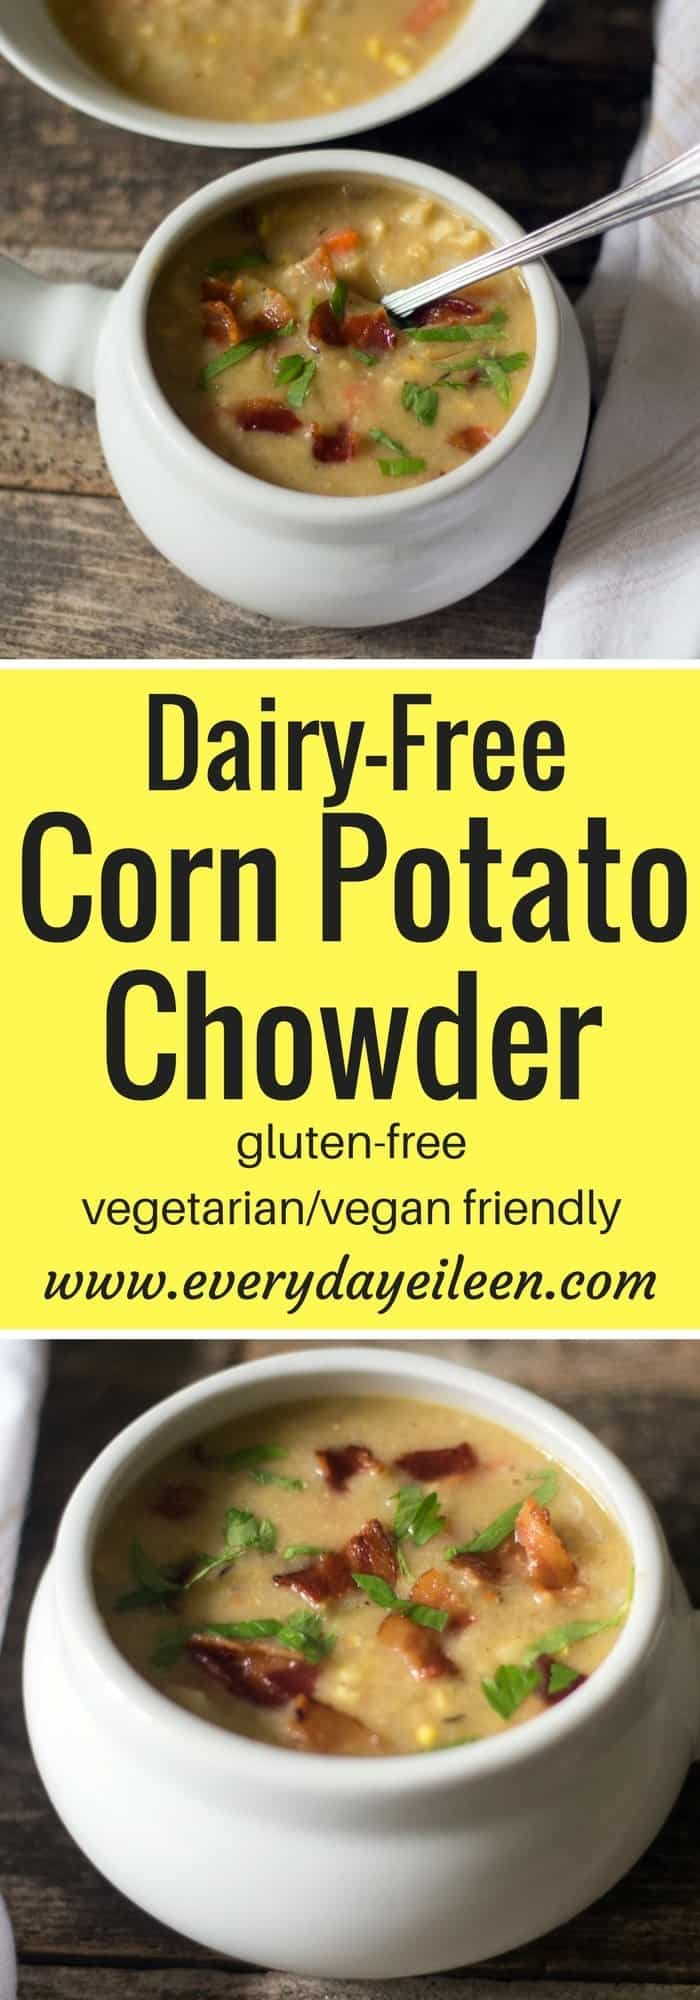 Dairy-Free Corn Potato Chowder